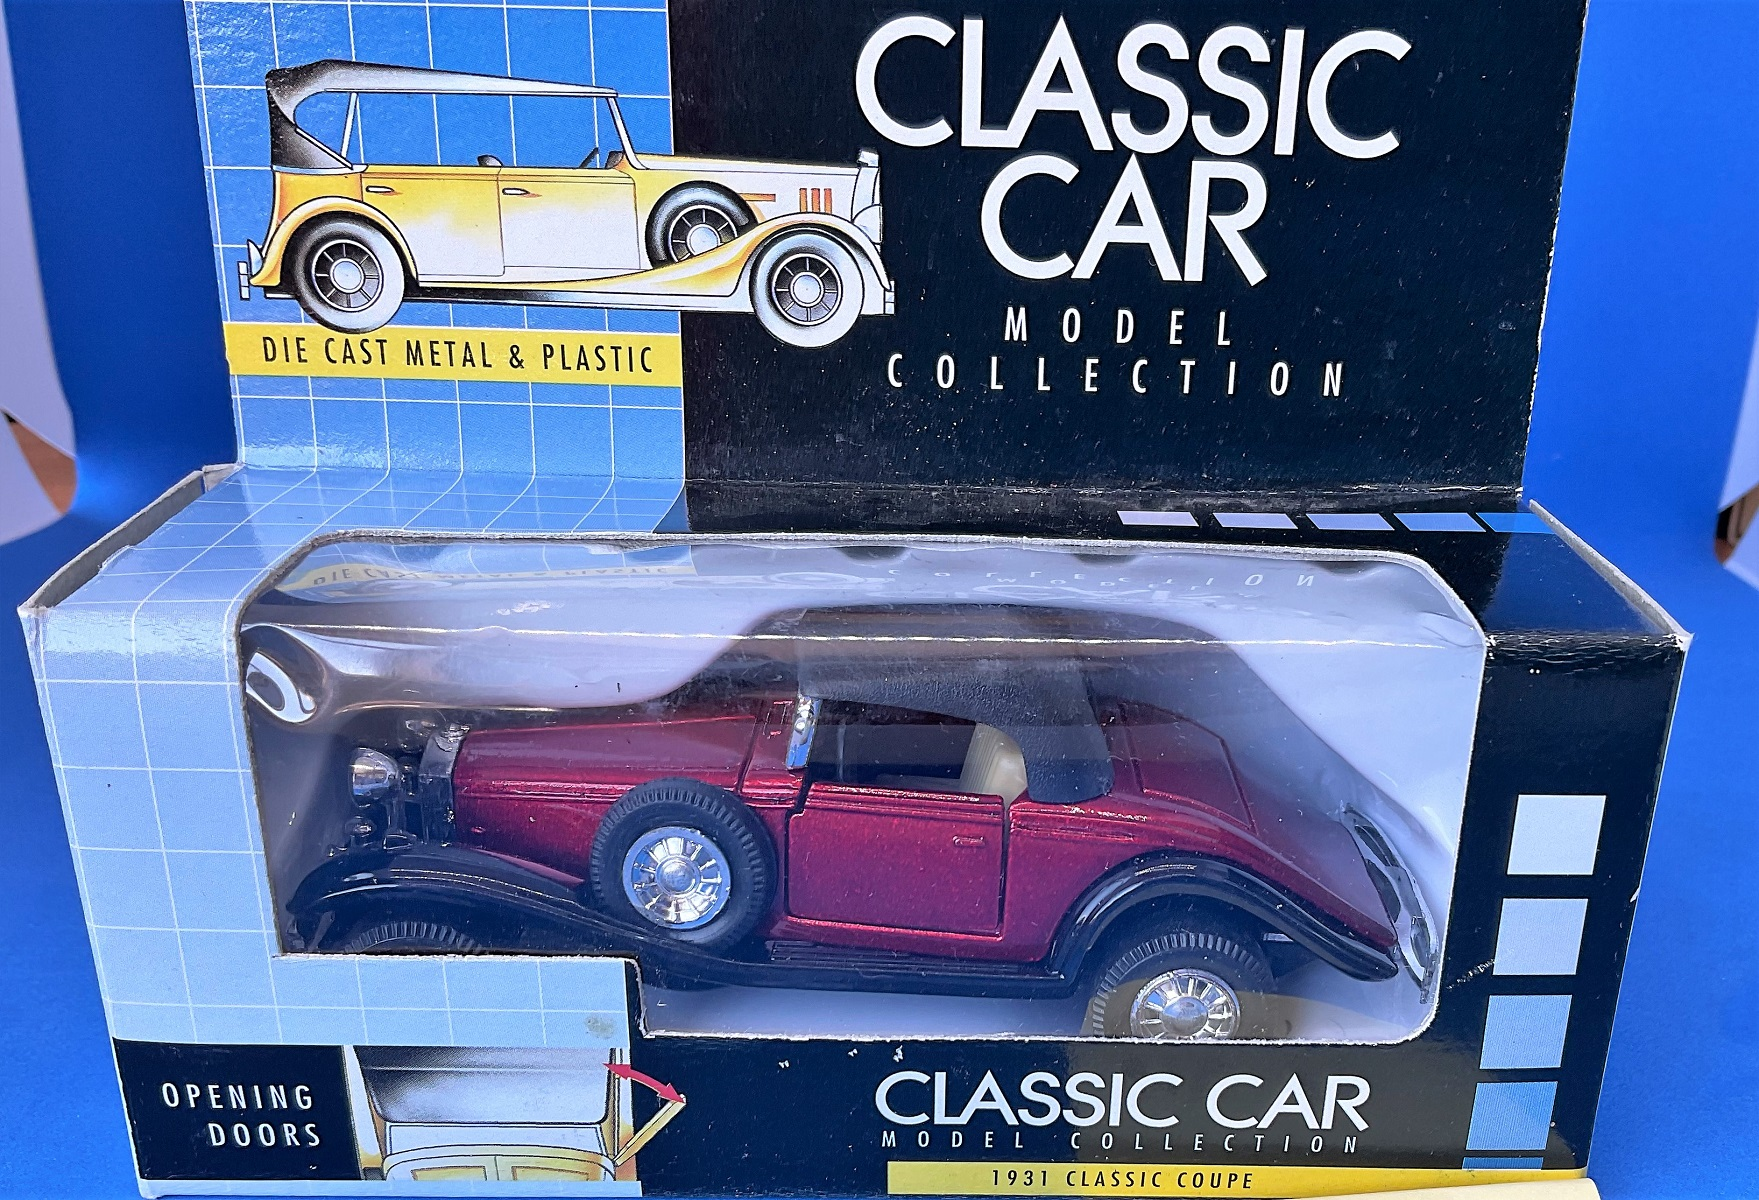 Vintage toys. A classic car model collector's item. A die-cast metal and plastic 1931 classic coupe,